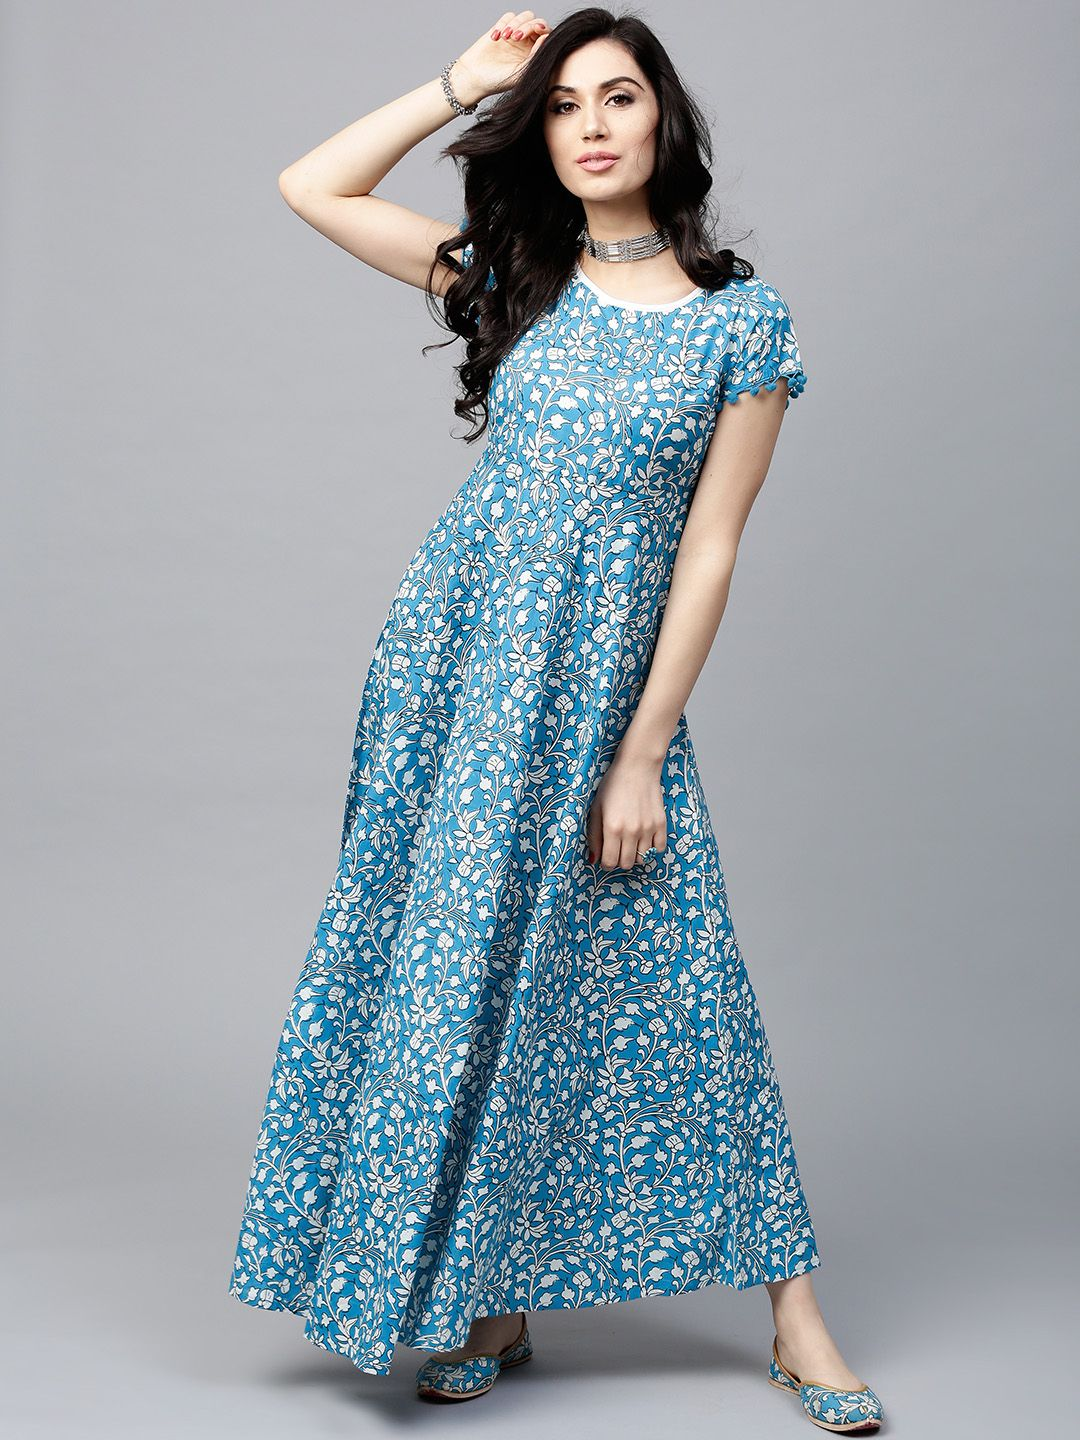 a592c5753 AKS Women Blue & White Printed Maxi Dress - Dresses for Women 2463669 |  Myntra #dresses #floraldresses #afflink #fashion #womensfashion  #maxidresses ...